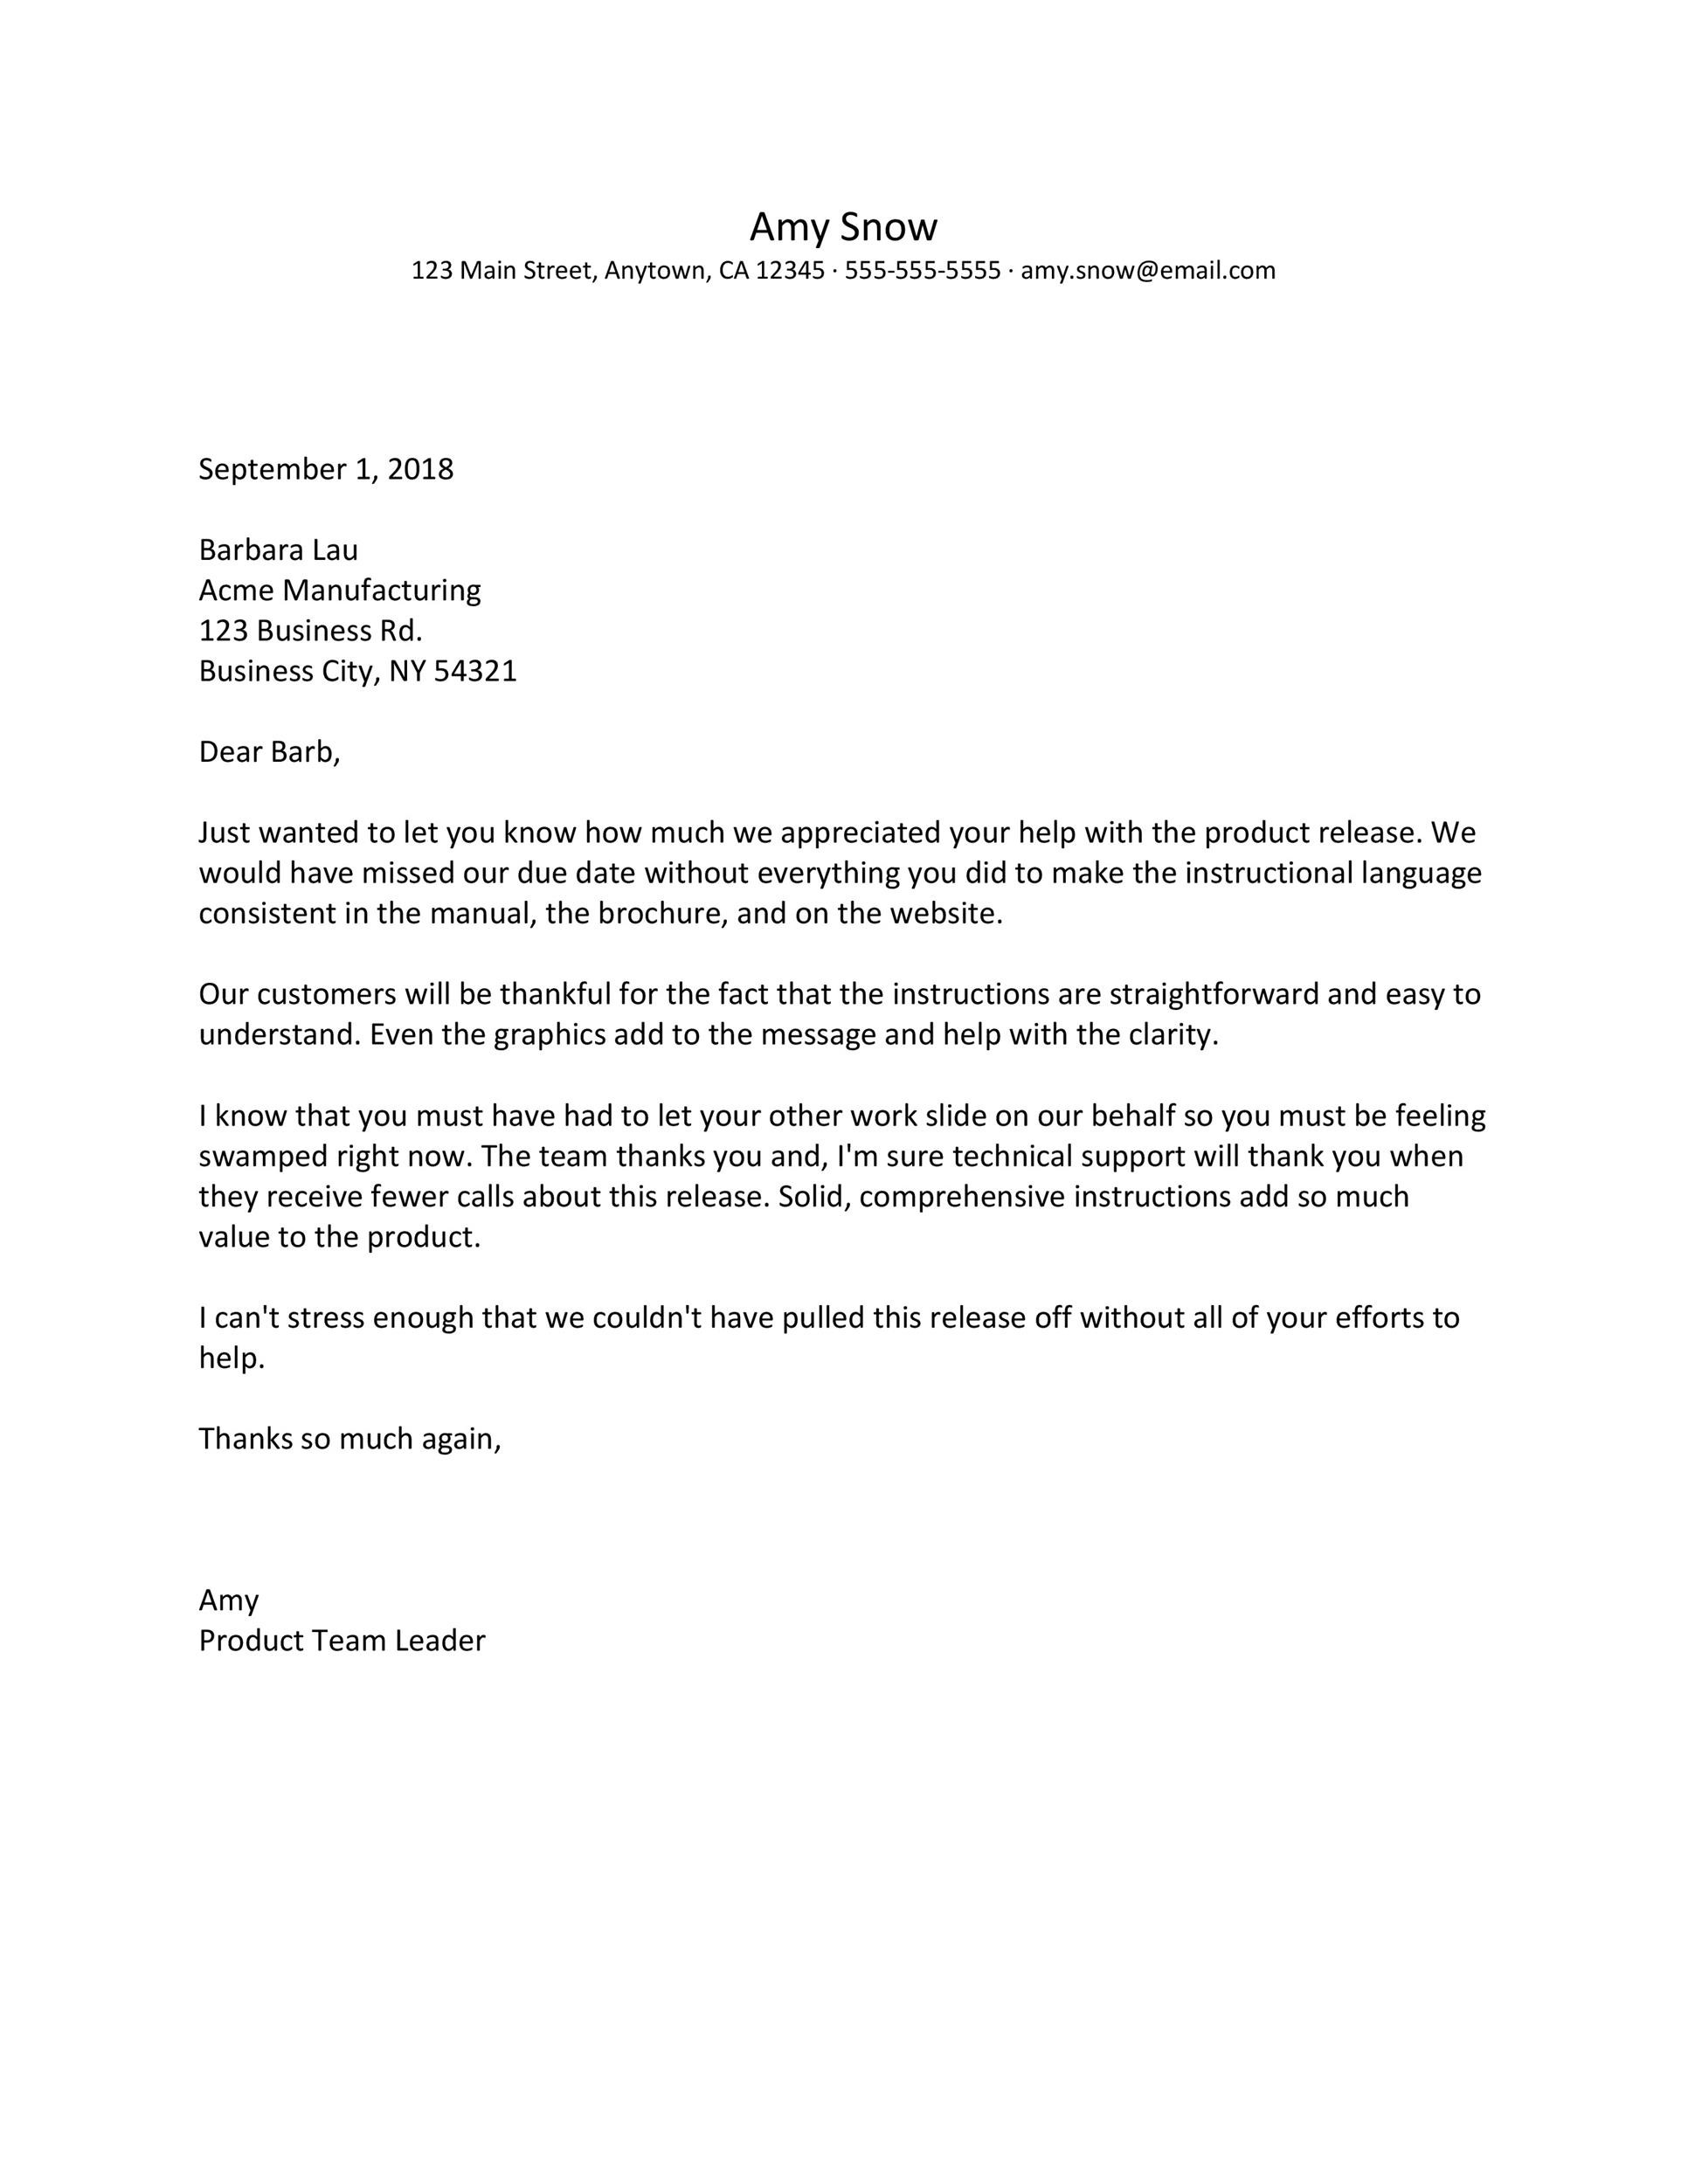 Free recognition letter 03